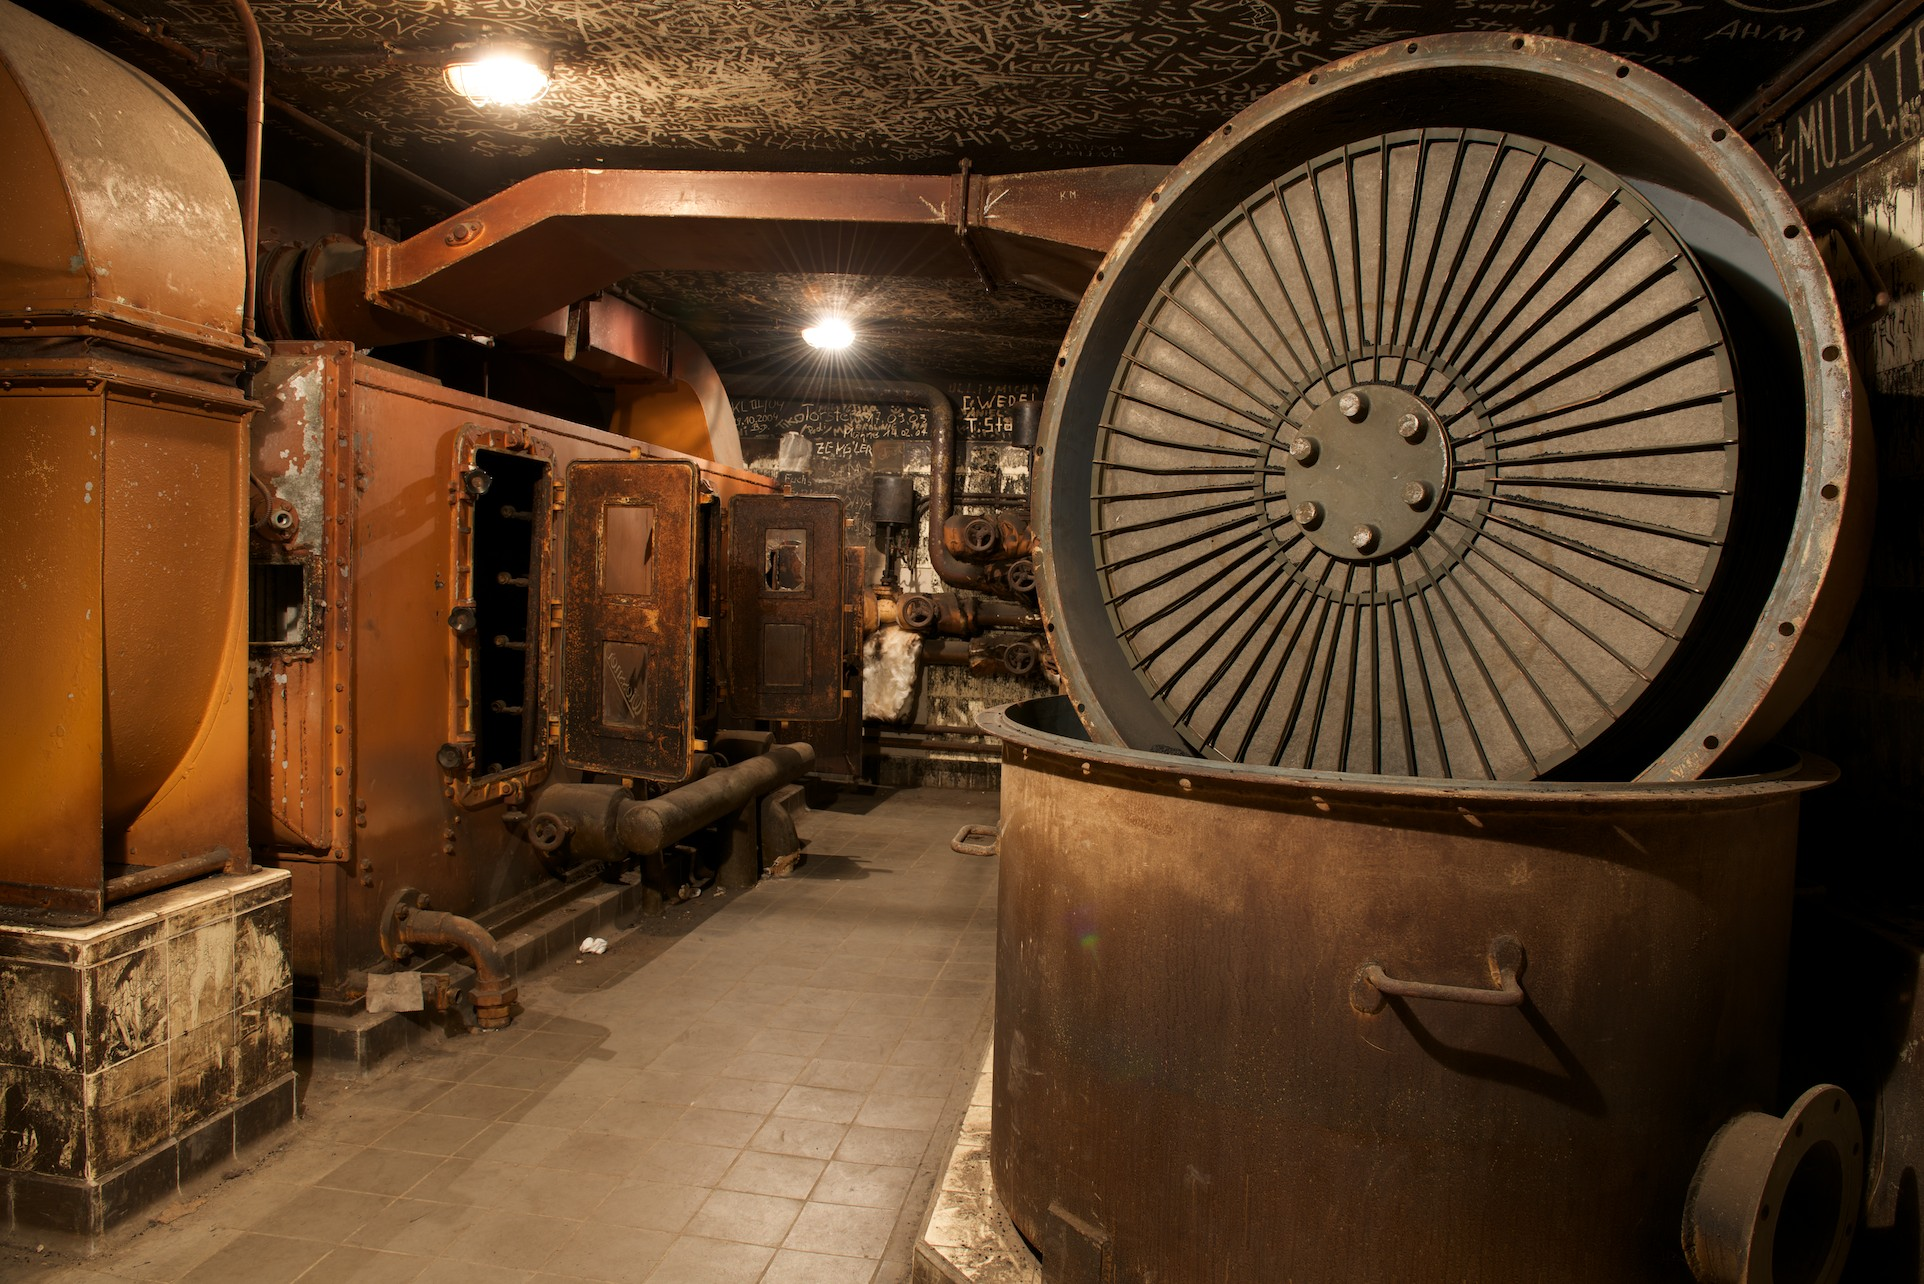 What looks like a large kettle stands in front of an old oven in a room which has undergone an intense fire